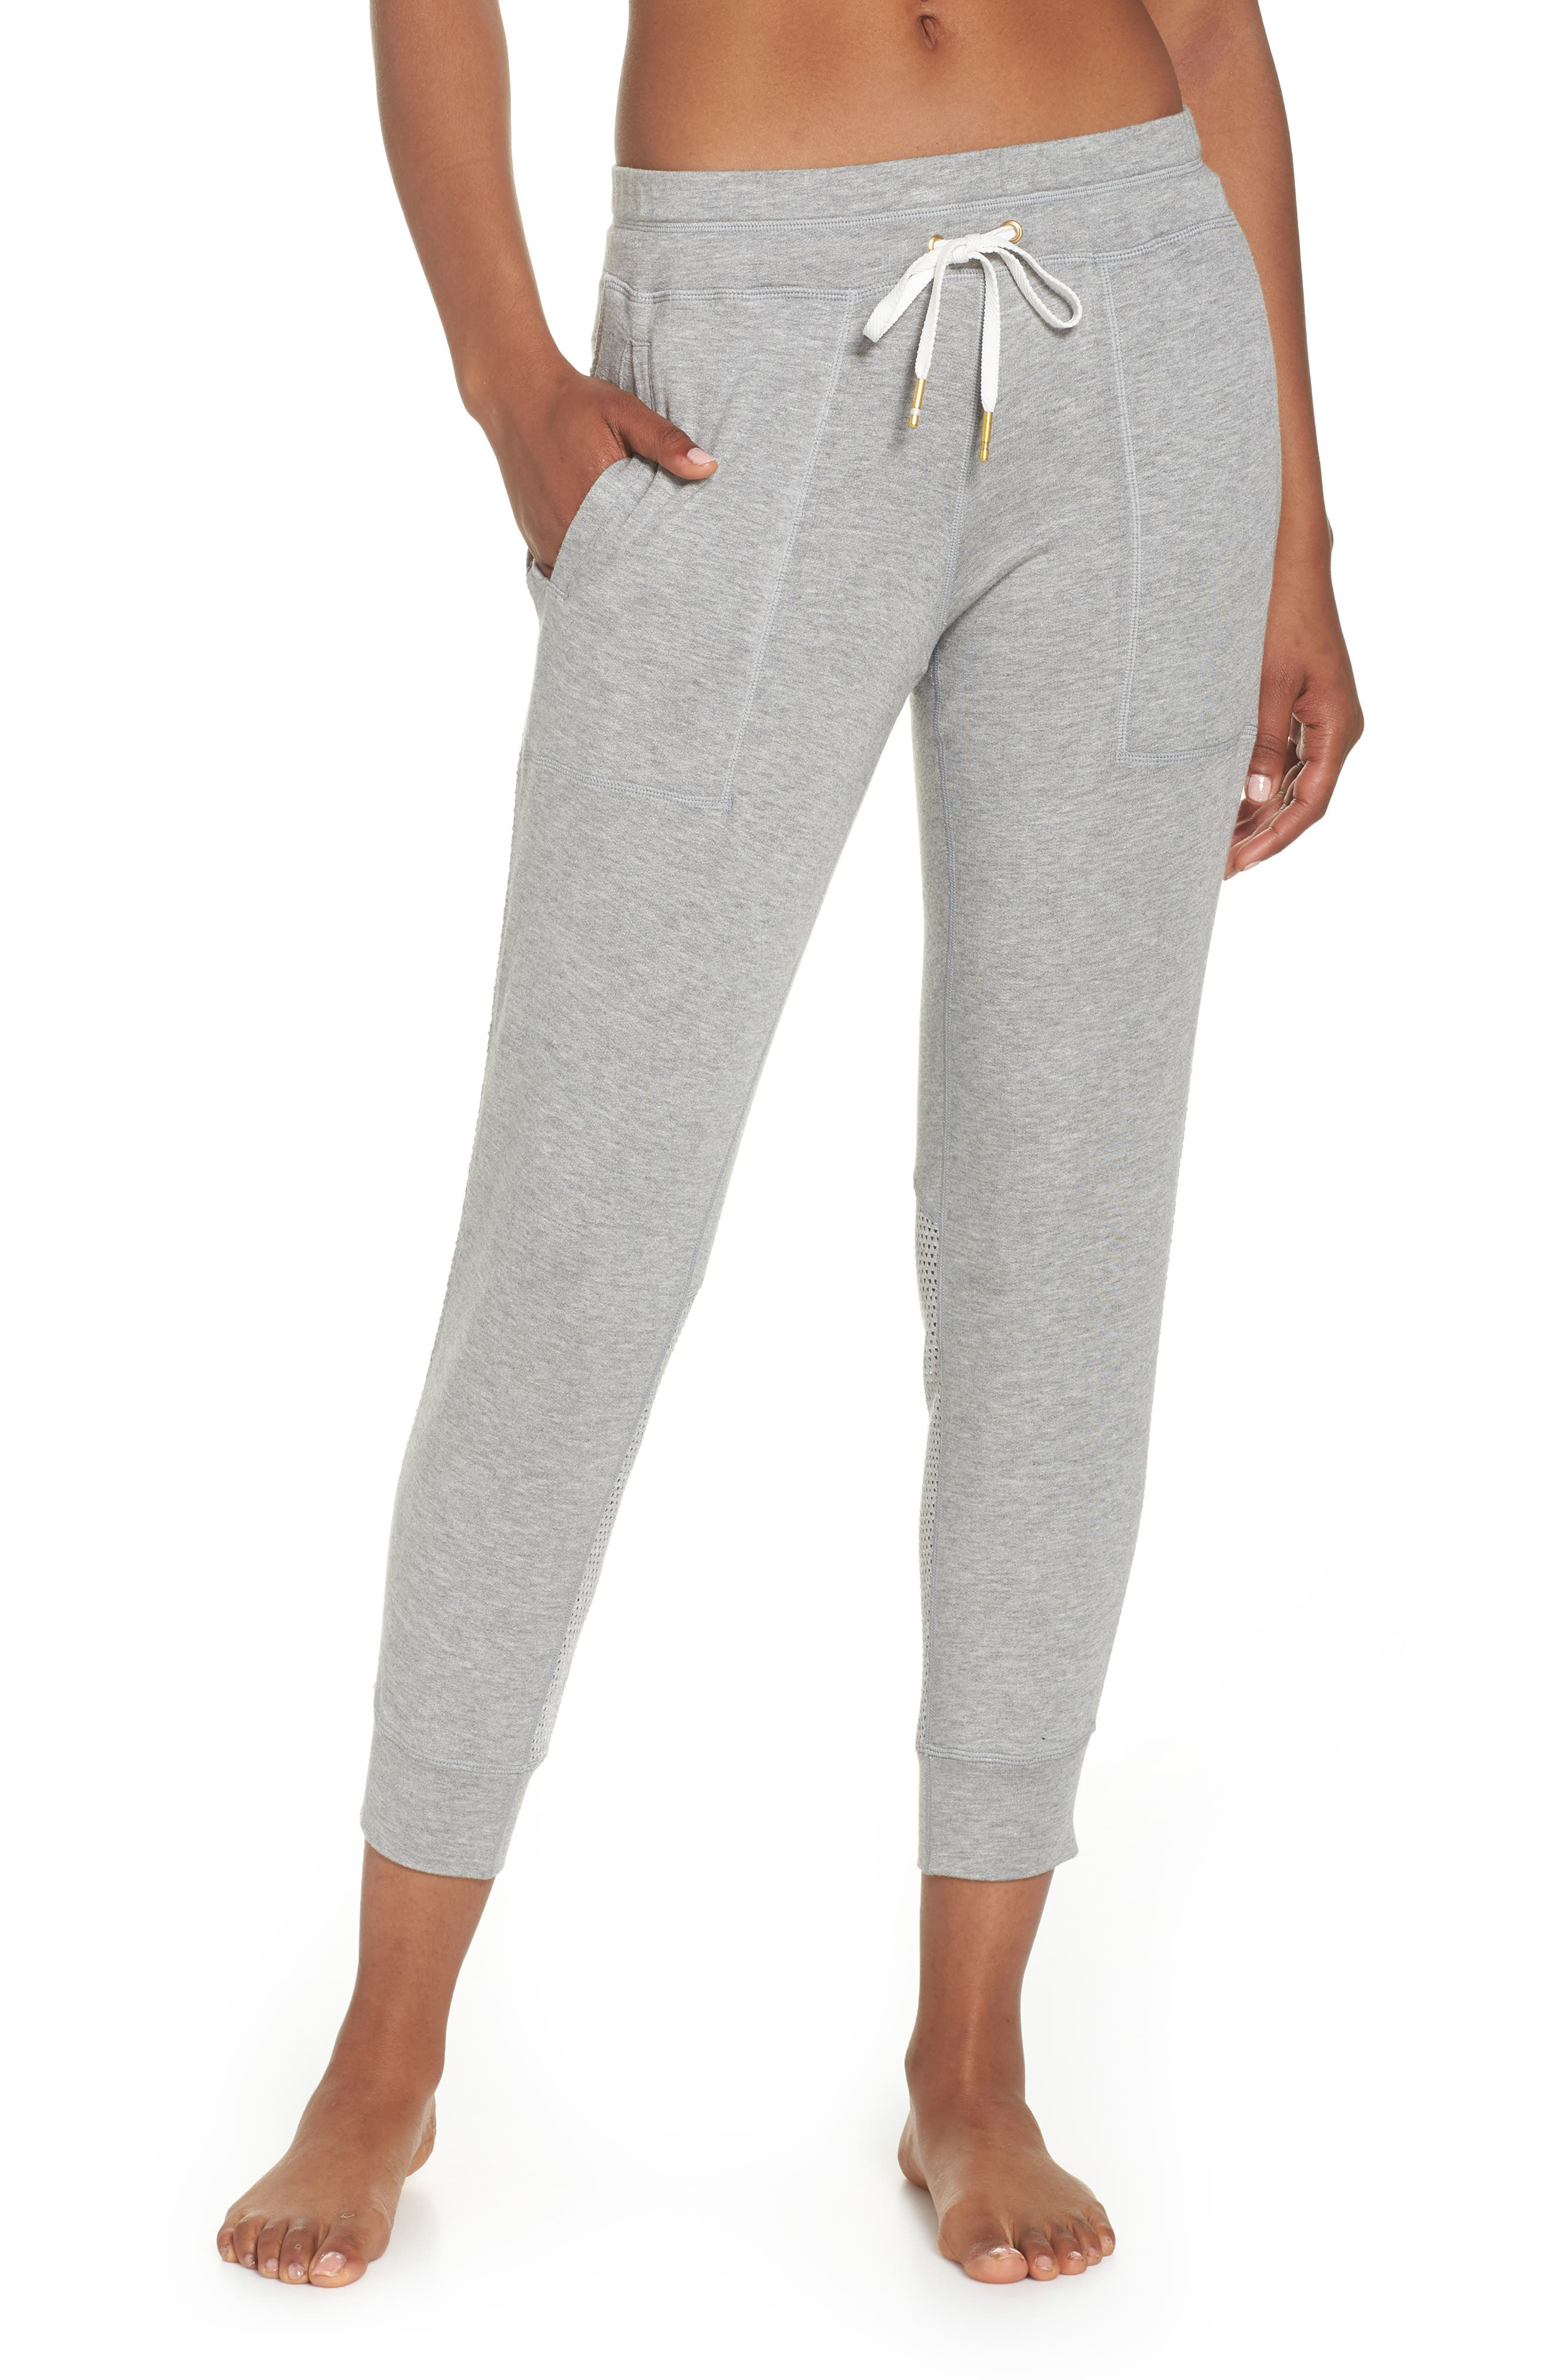 Heron Ankle Jogger Pants,                             Main thumbnail 1, color,                             Heather Grey